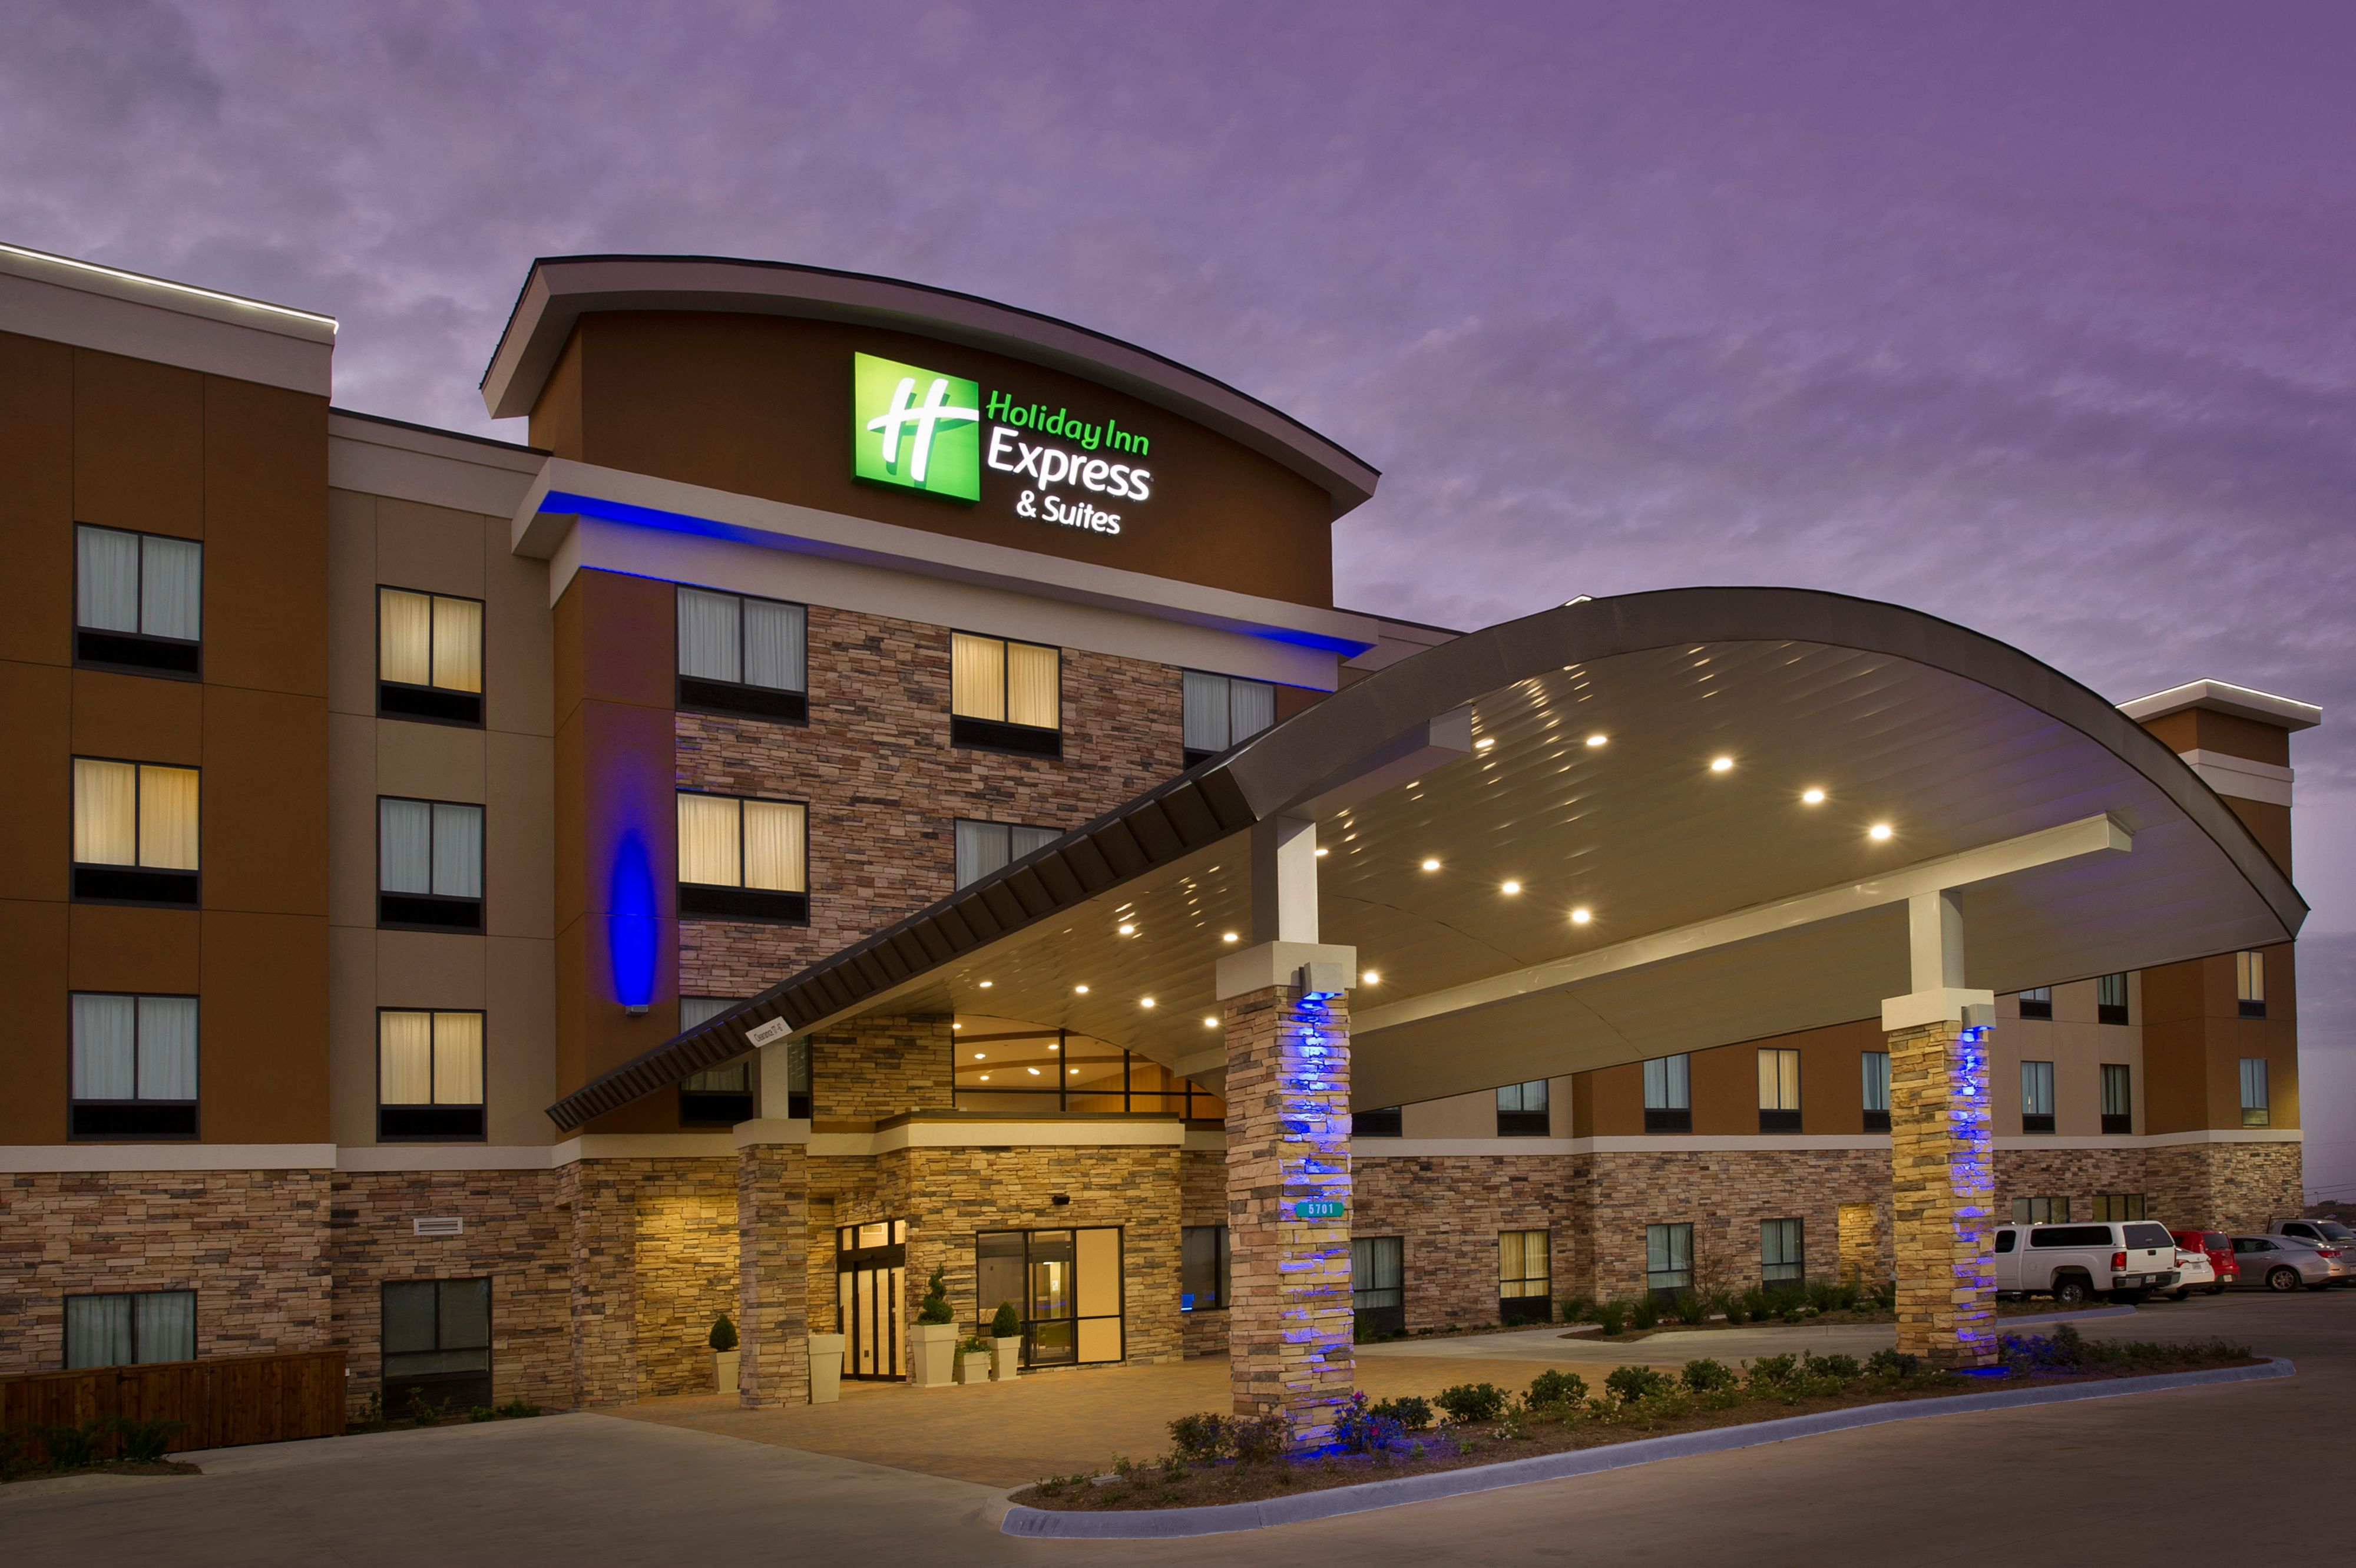 Holiday Inn Express Suites Wabash 1311 North C Street 260 569 1189